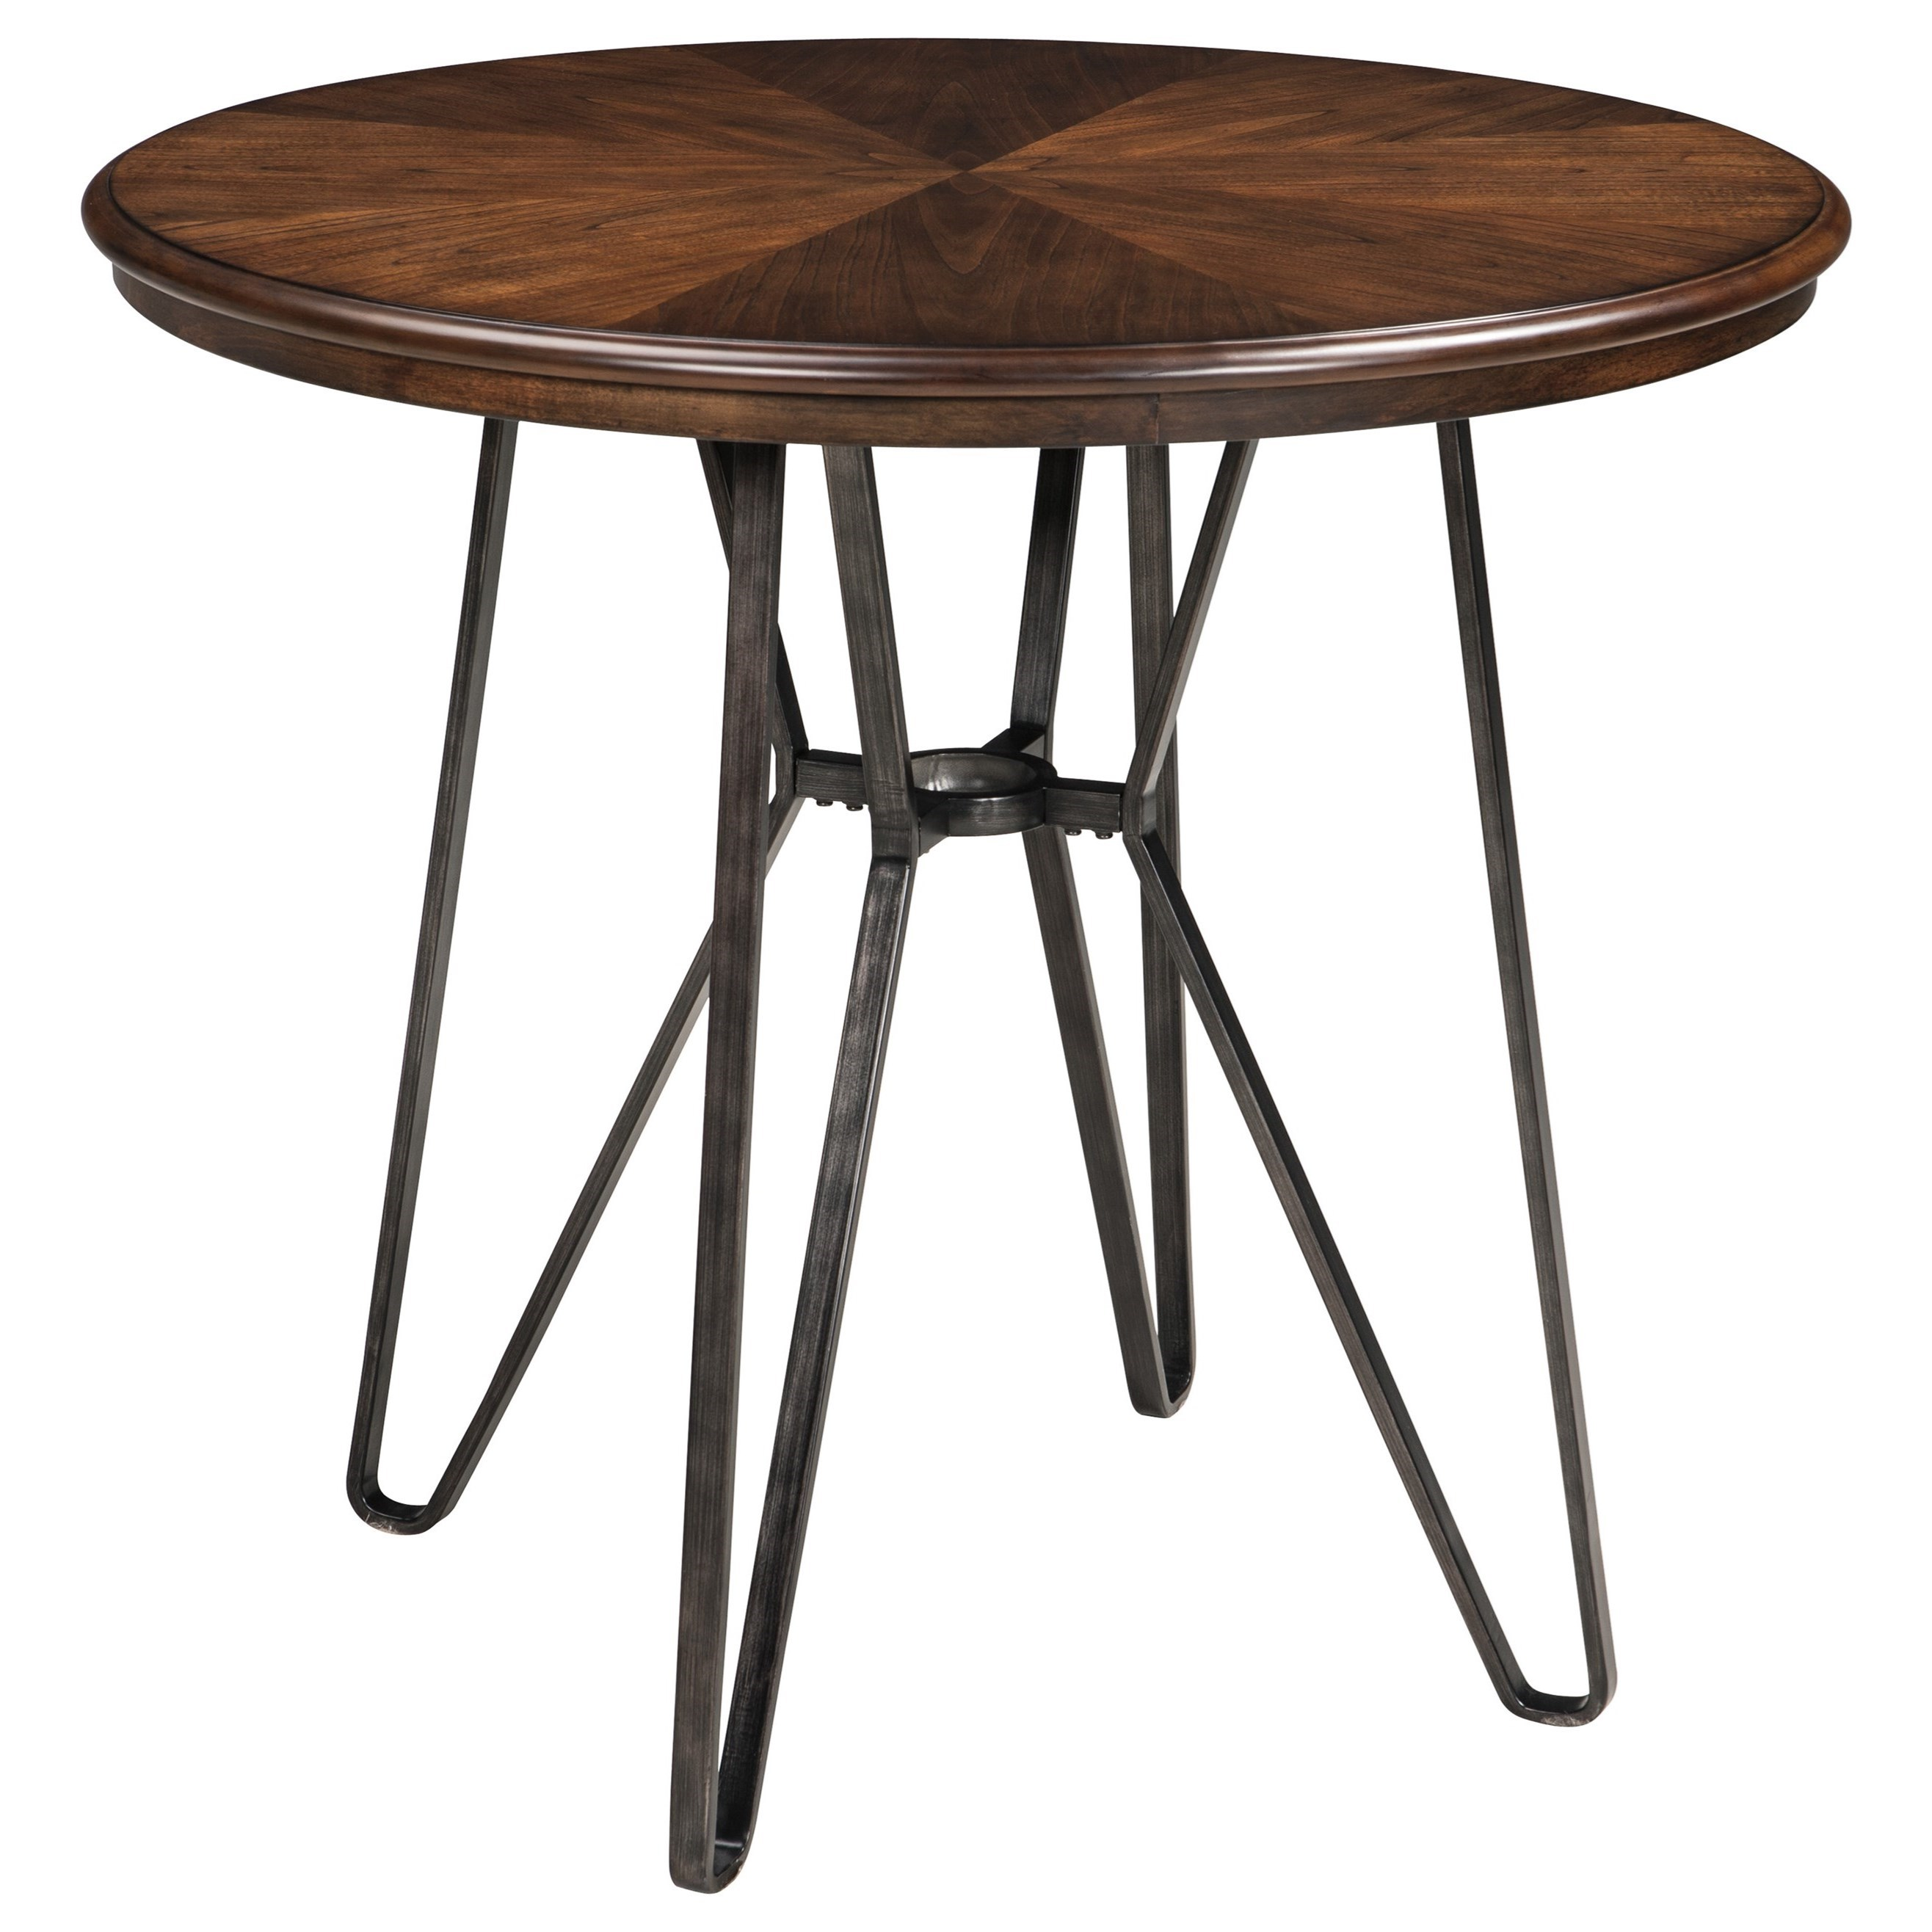 Ashley Furniture Table: Signature Design By Ashley Centiar D372-13 Round Dining